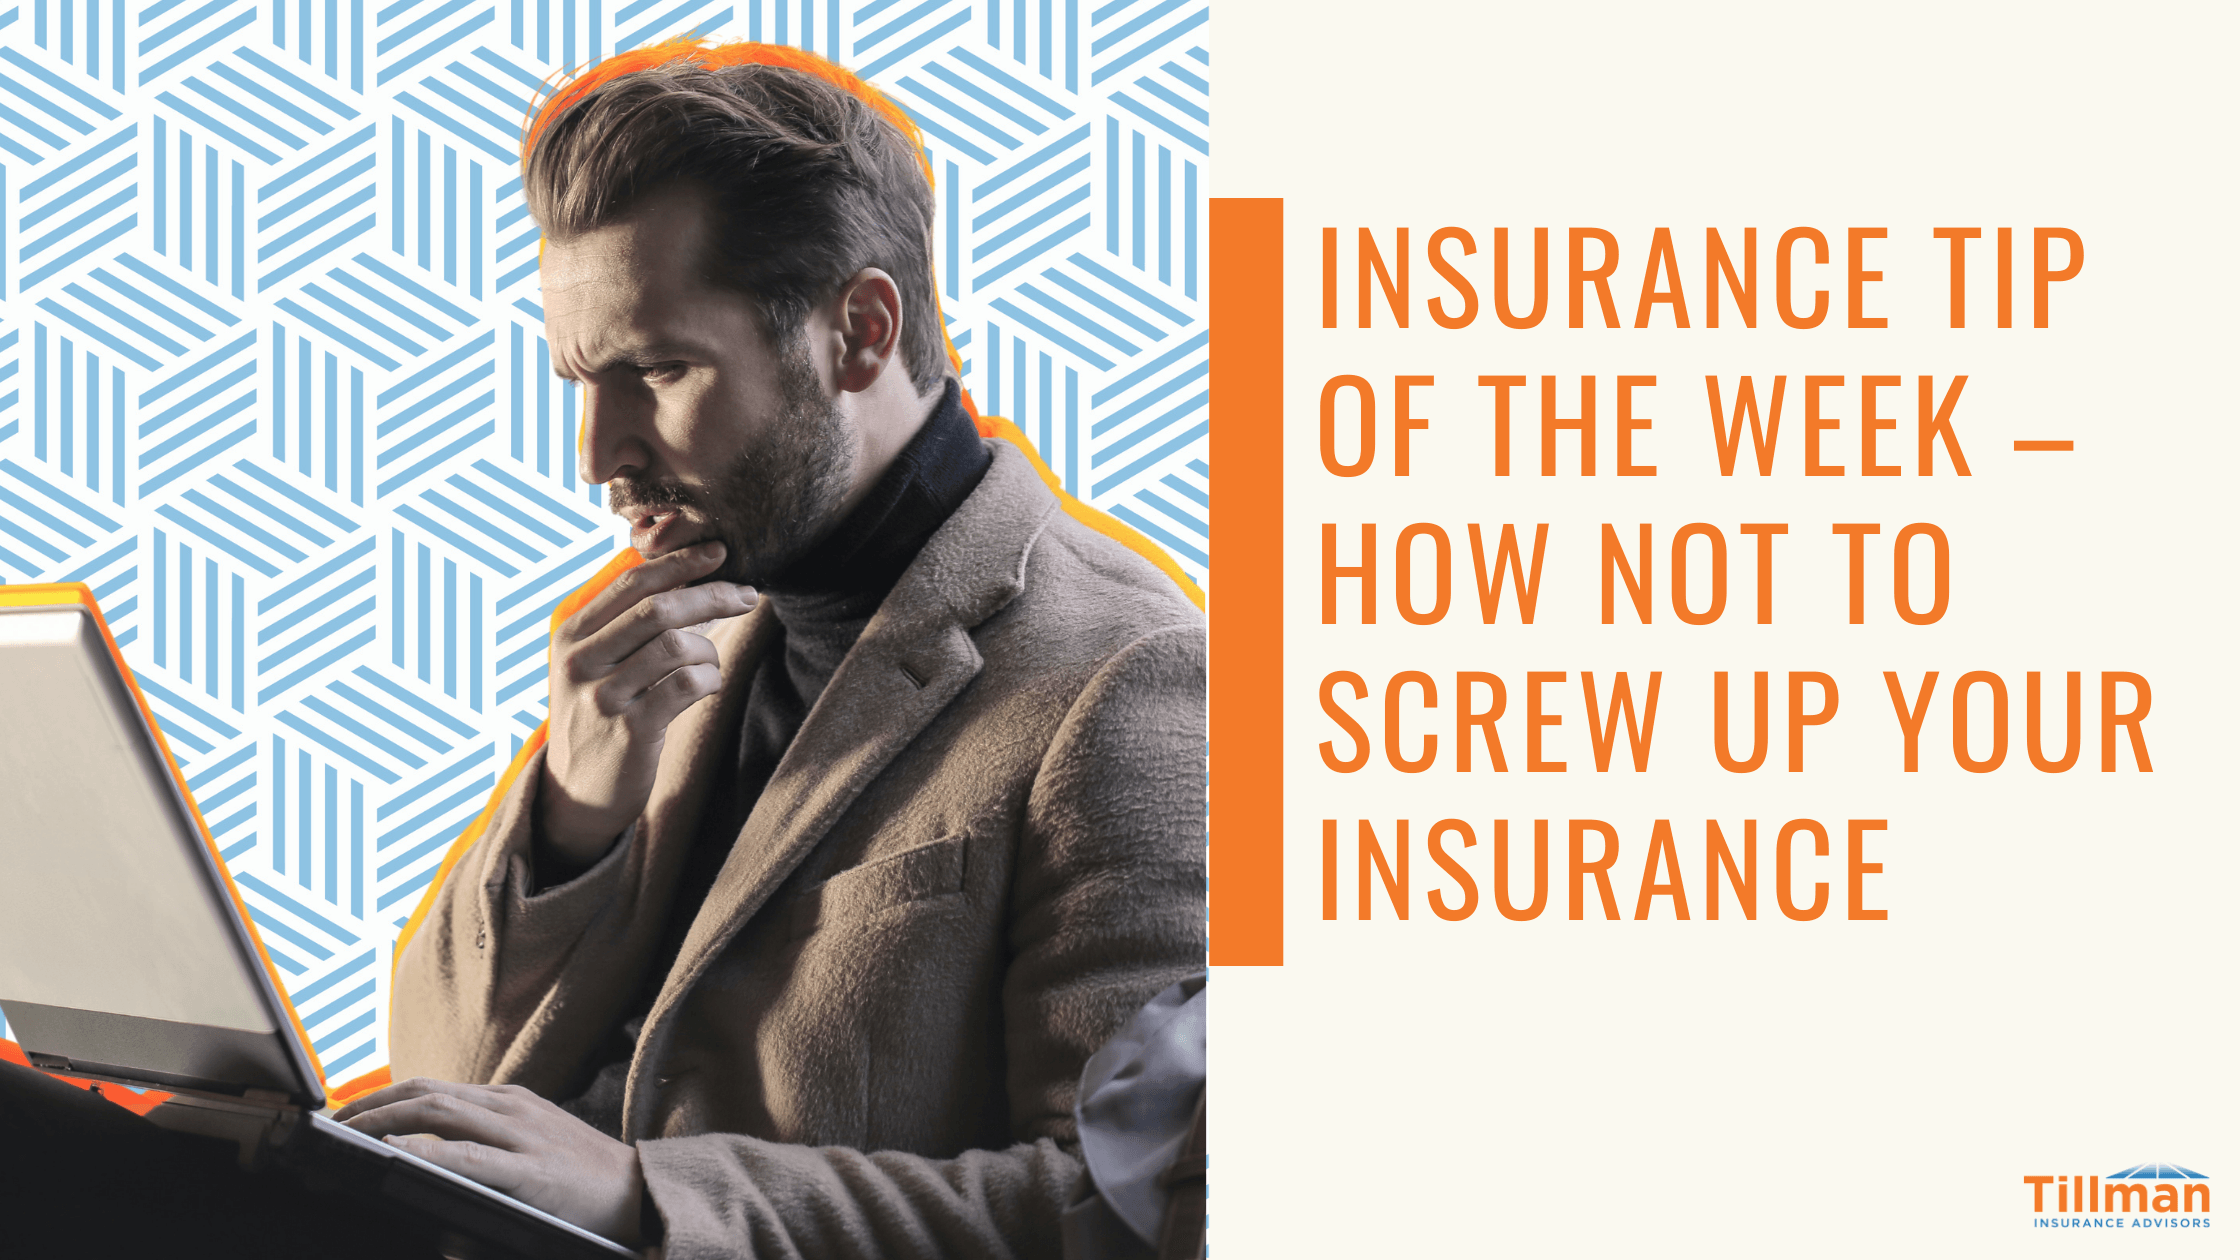 Insurance Tip of the Week